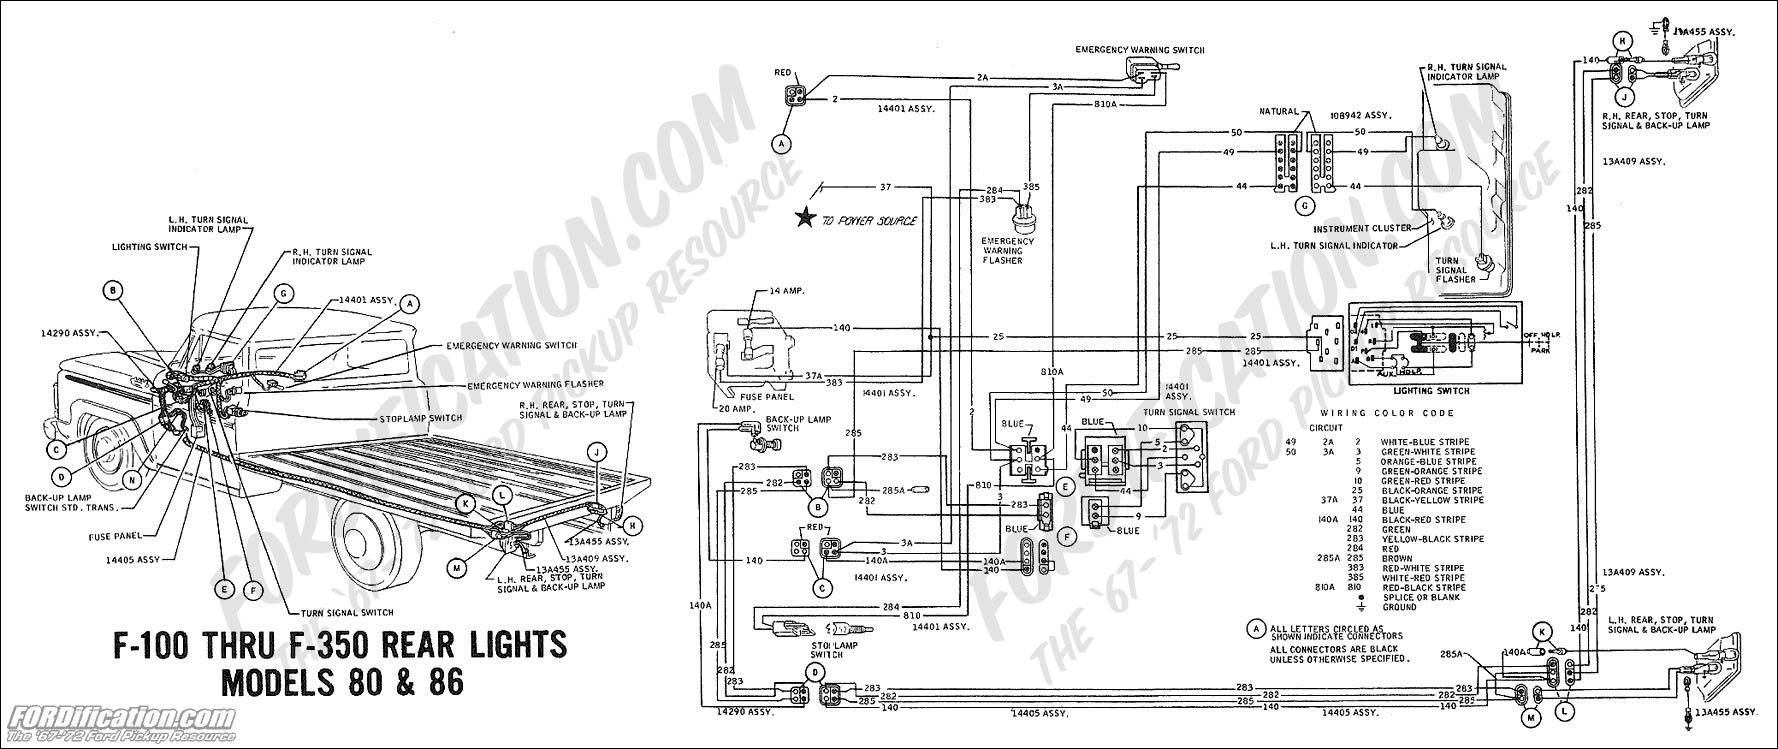 wiring a lamp plug with Tail Light Wiring Schematic 1996 Ford F 350 on Schematics h additionally ment 15329 further Ck63 Field Control Wiring Diagram moreover ShowAssembly moreover File Electrical Symbols IEC.